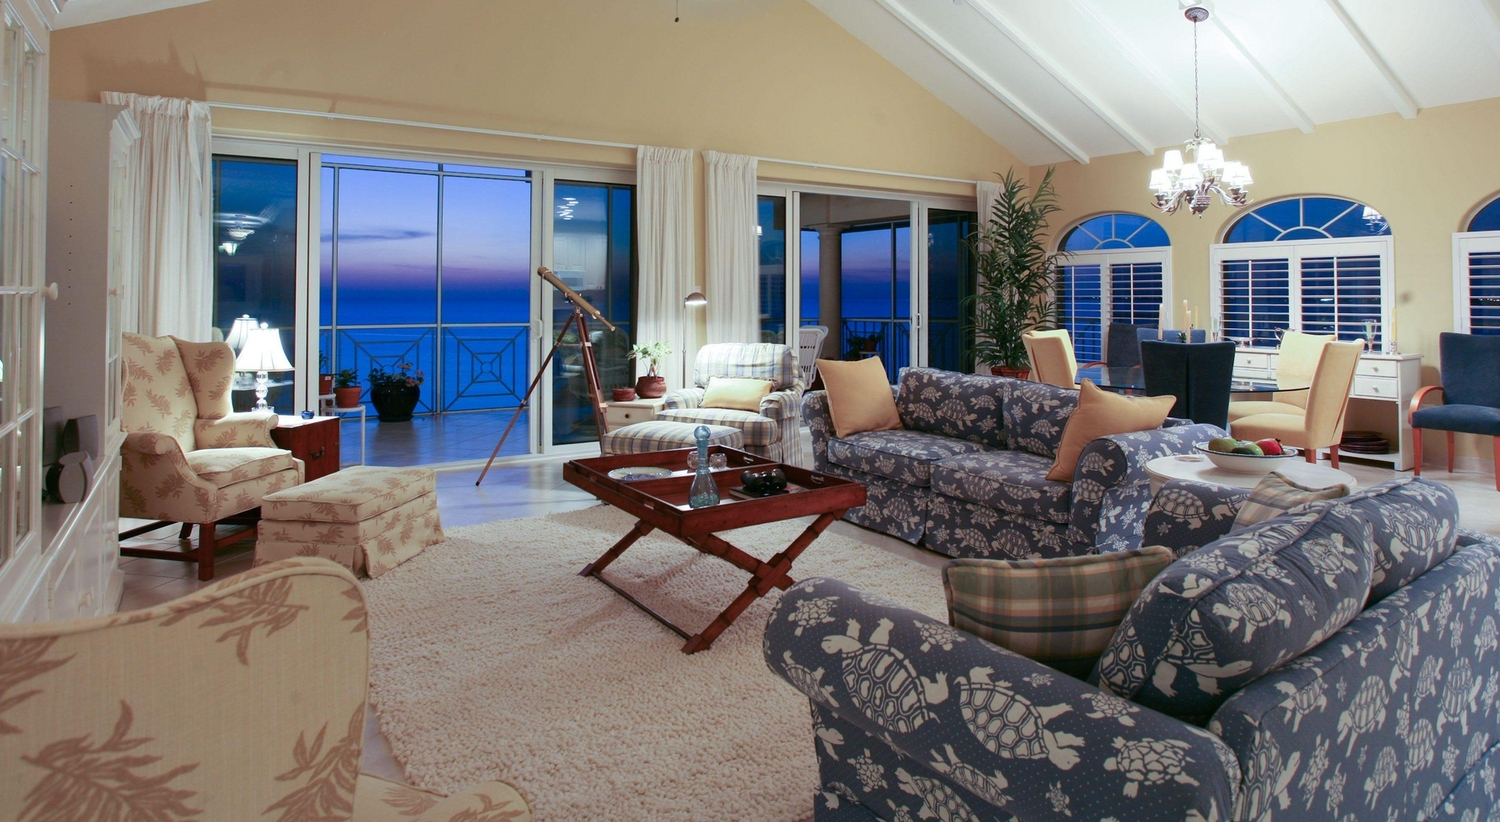 Neutral coloured tropical patterned livingroom furniture gazing over the ocean at dusk